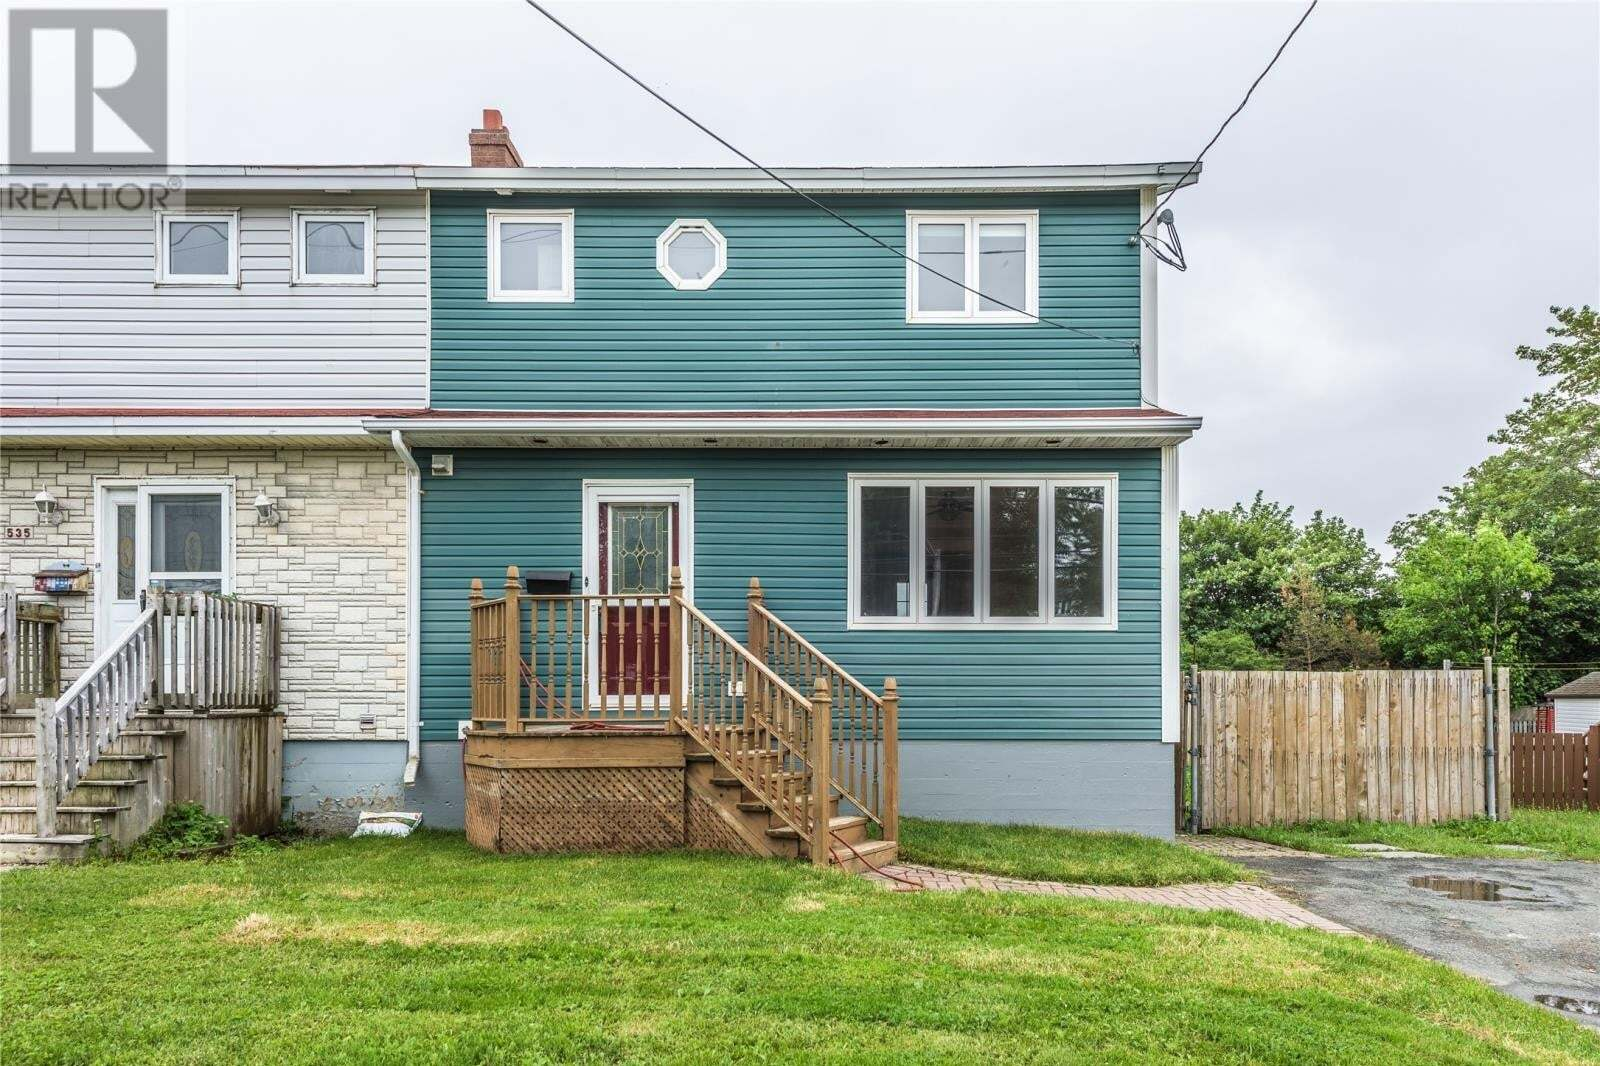 House for sale at 537 Topsail Rd St. John's Newfoundland - MLS: 1222450